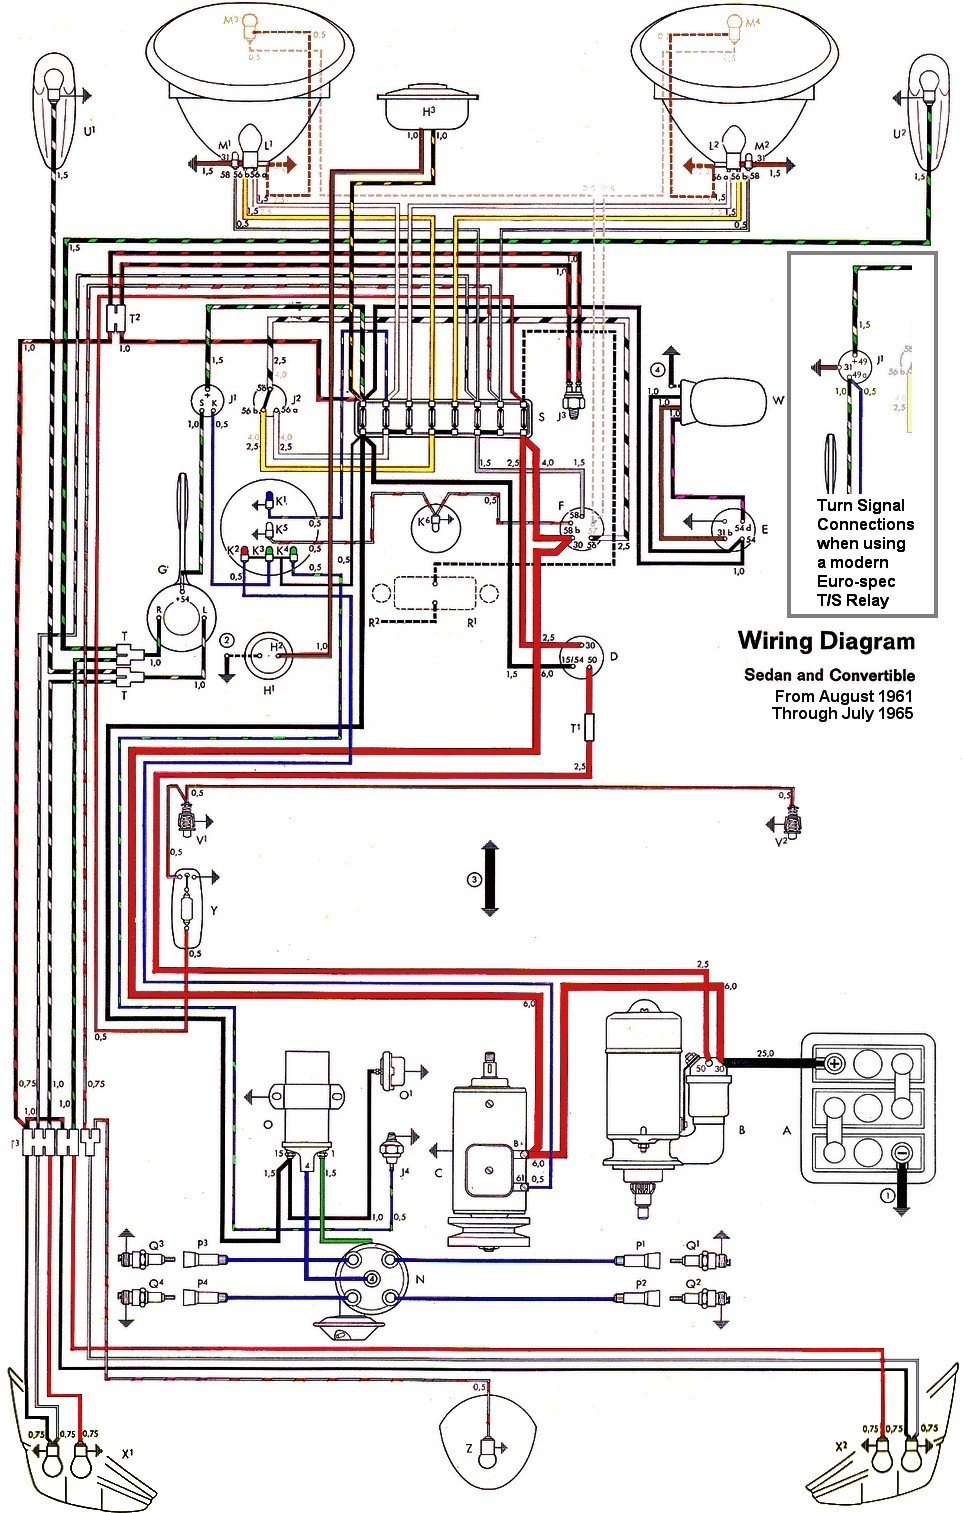 wiring diagram for 1979 vw super beetle wiring diagram database 71 vw beetle wiring diagram thesamba com type 1 wiring diagrams 1979 vw super beetle engine